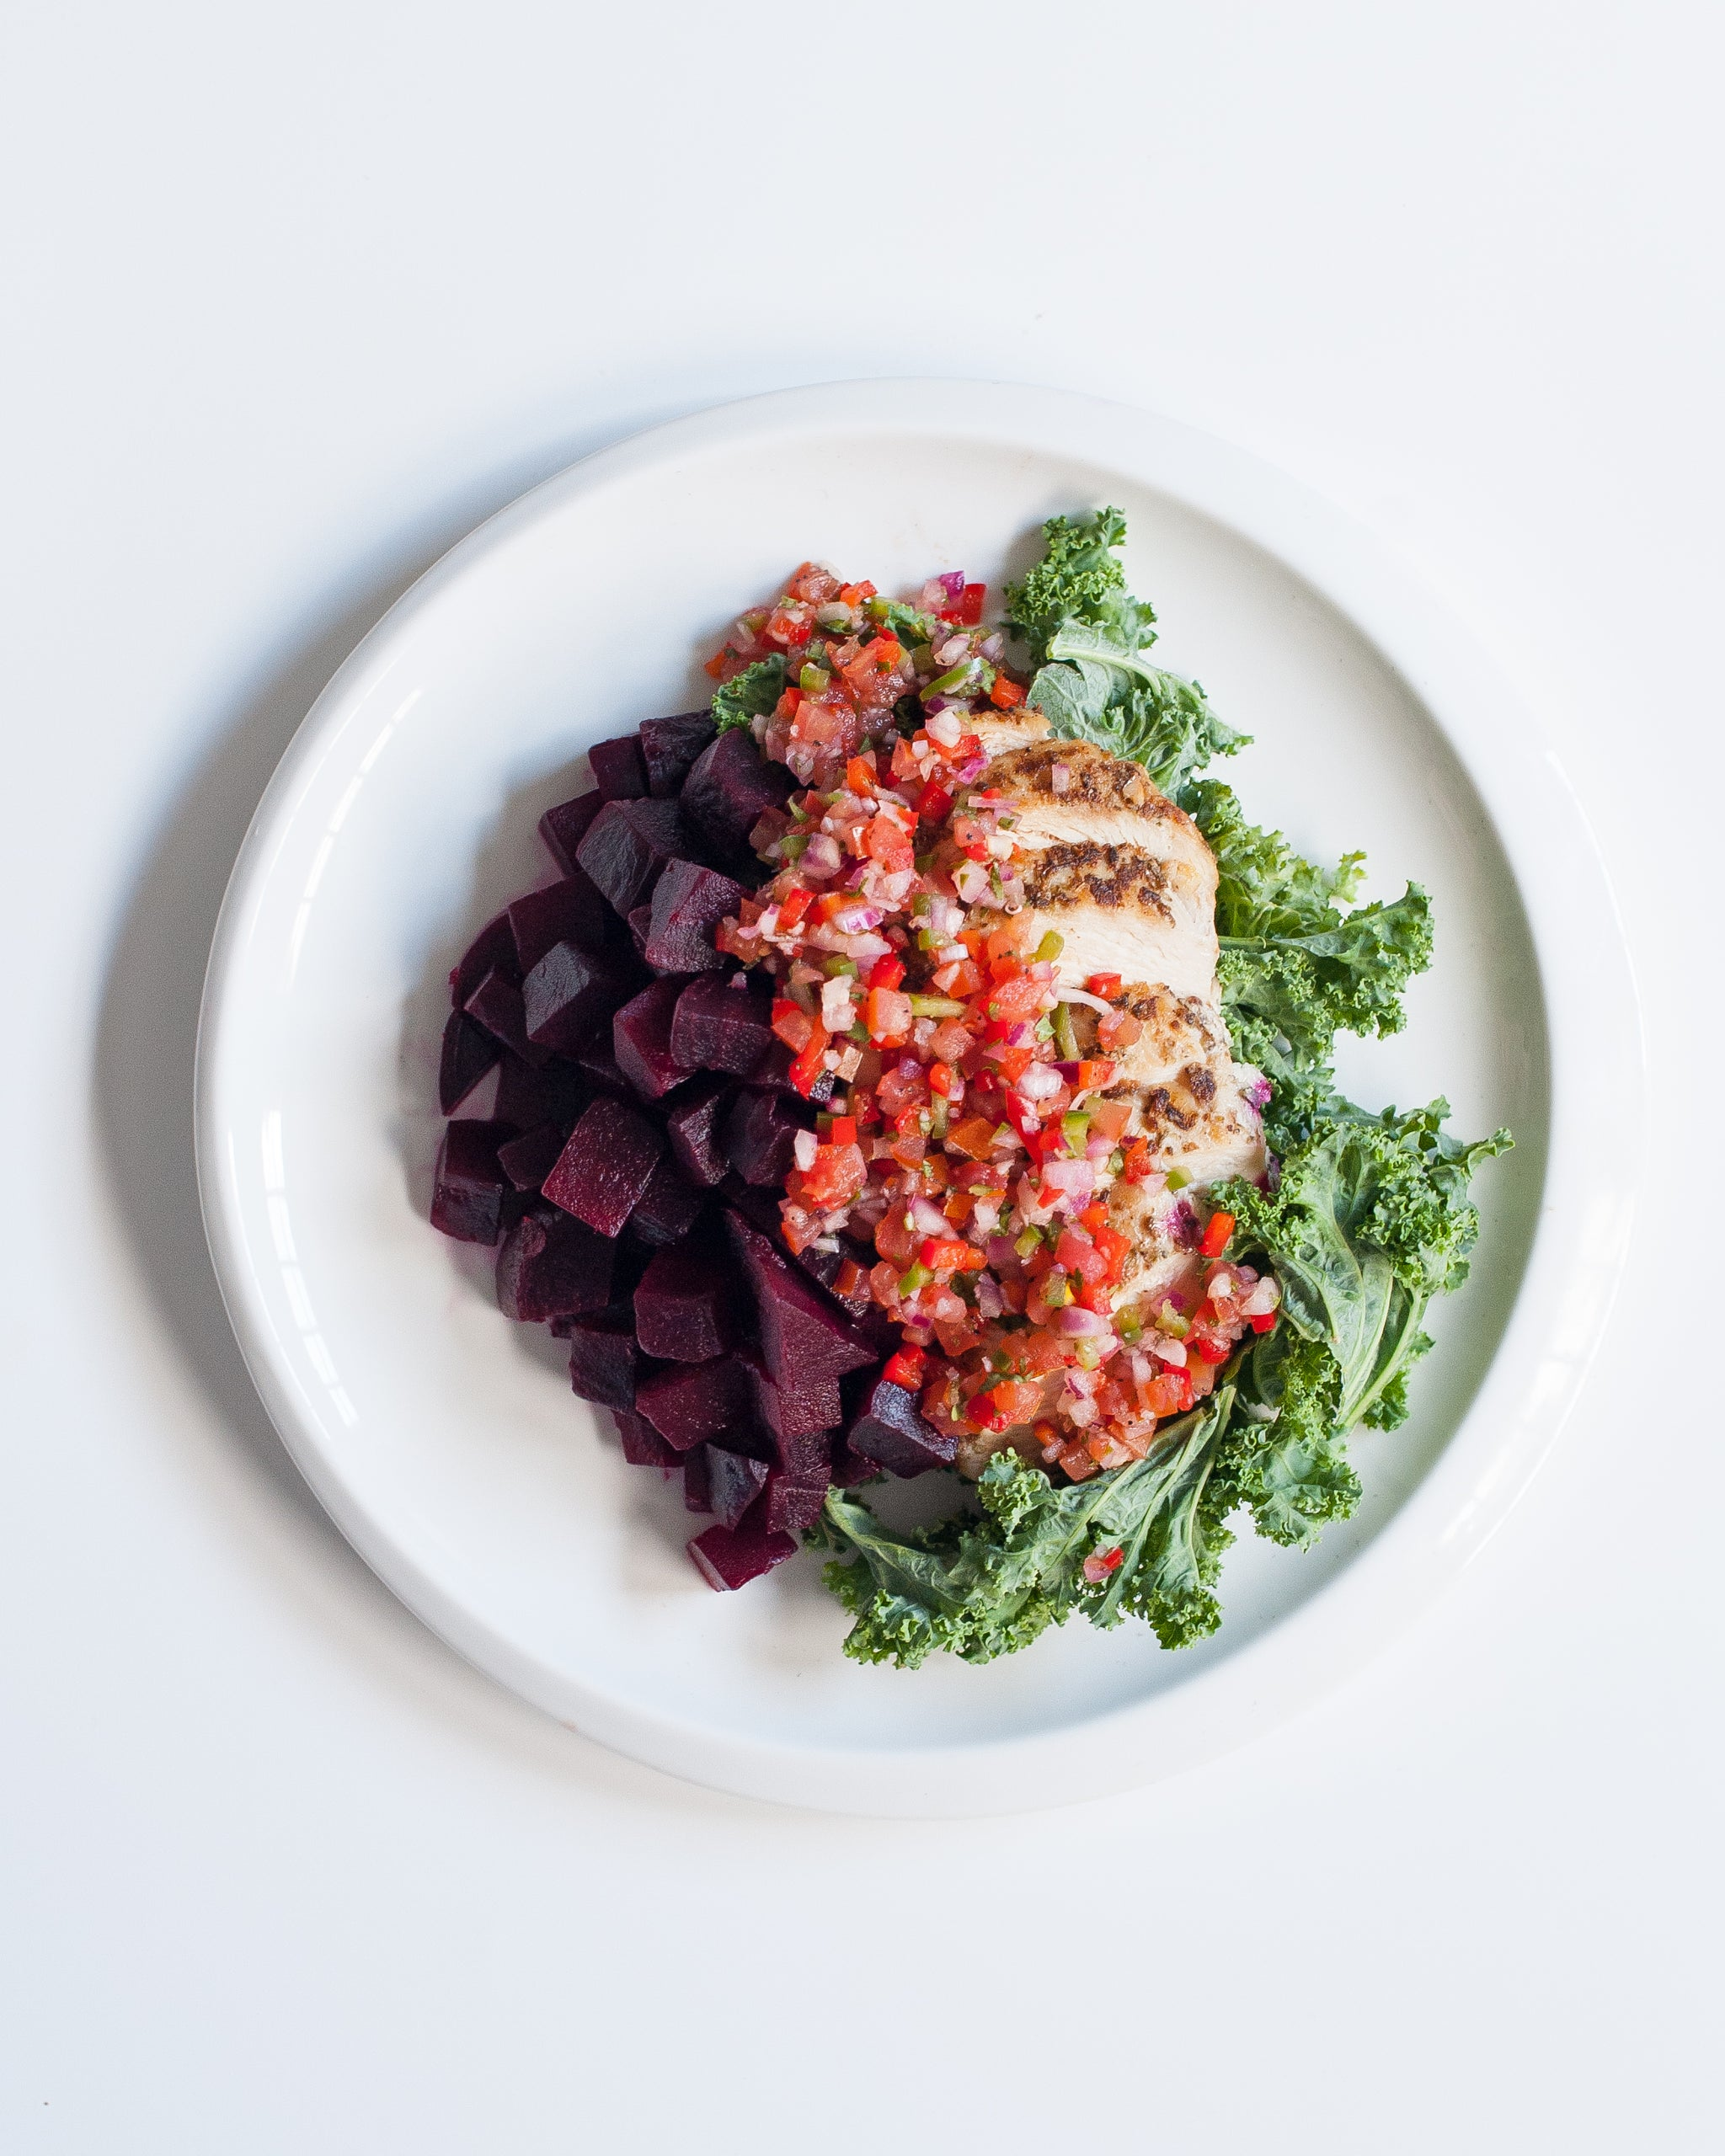 Chicken & Veggies with Tomato Salsa (P) - Sauté